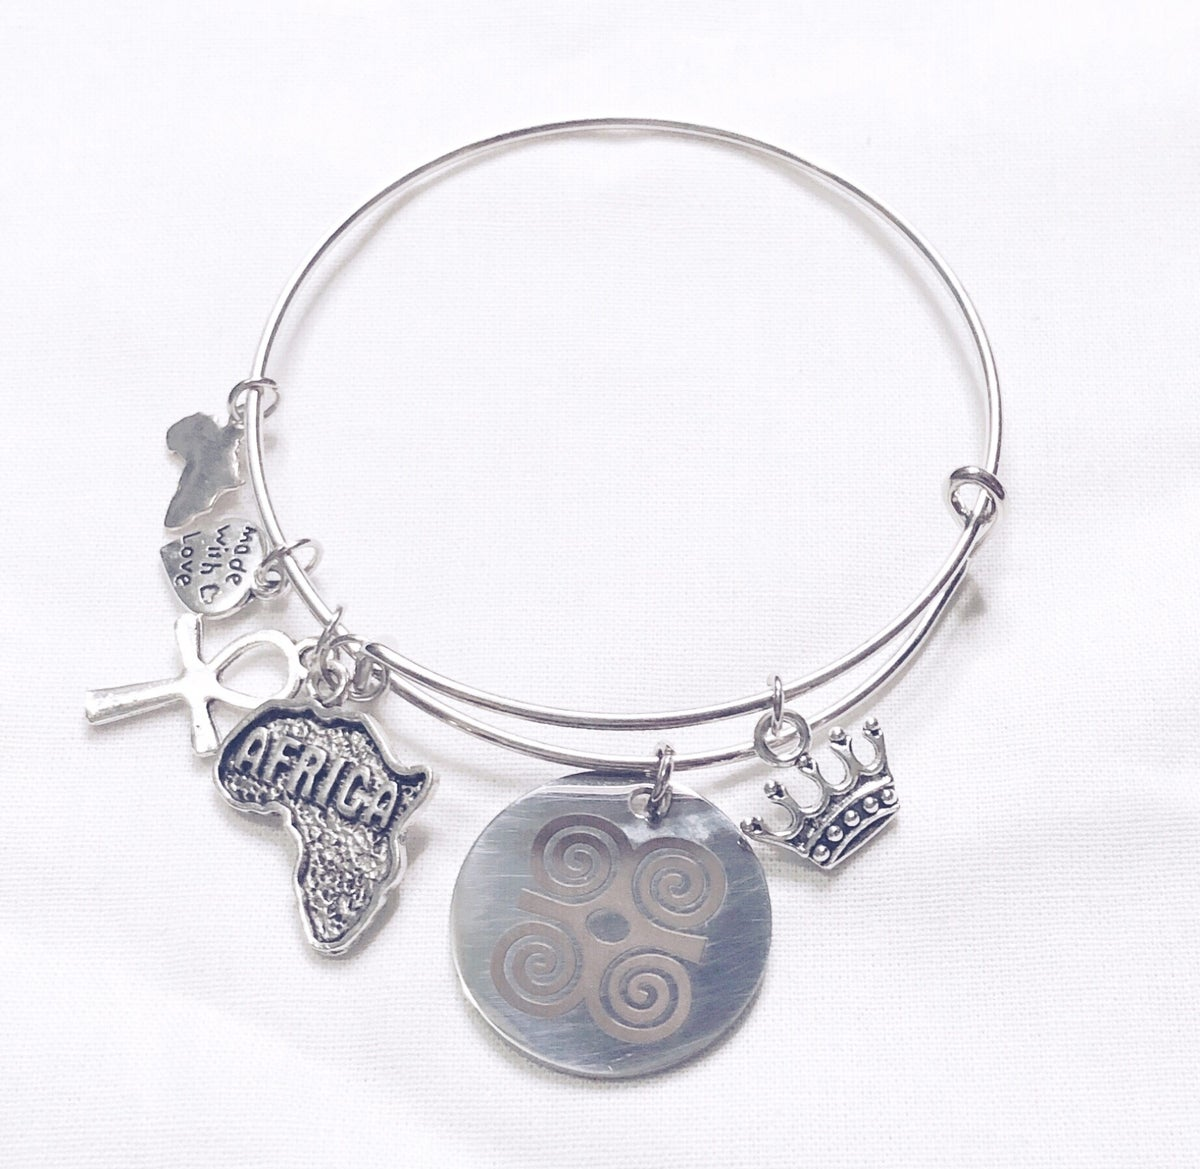 Image of Adinkra Dwennimmen Bangle